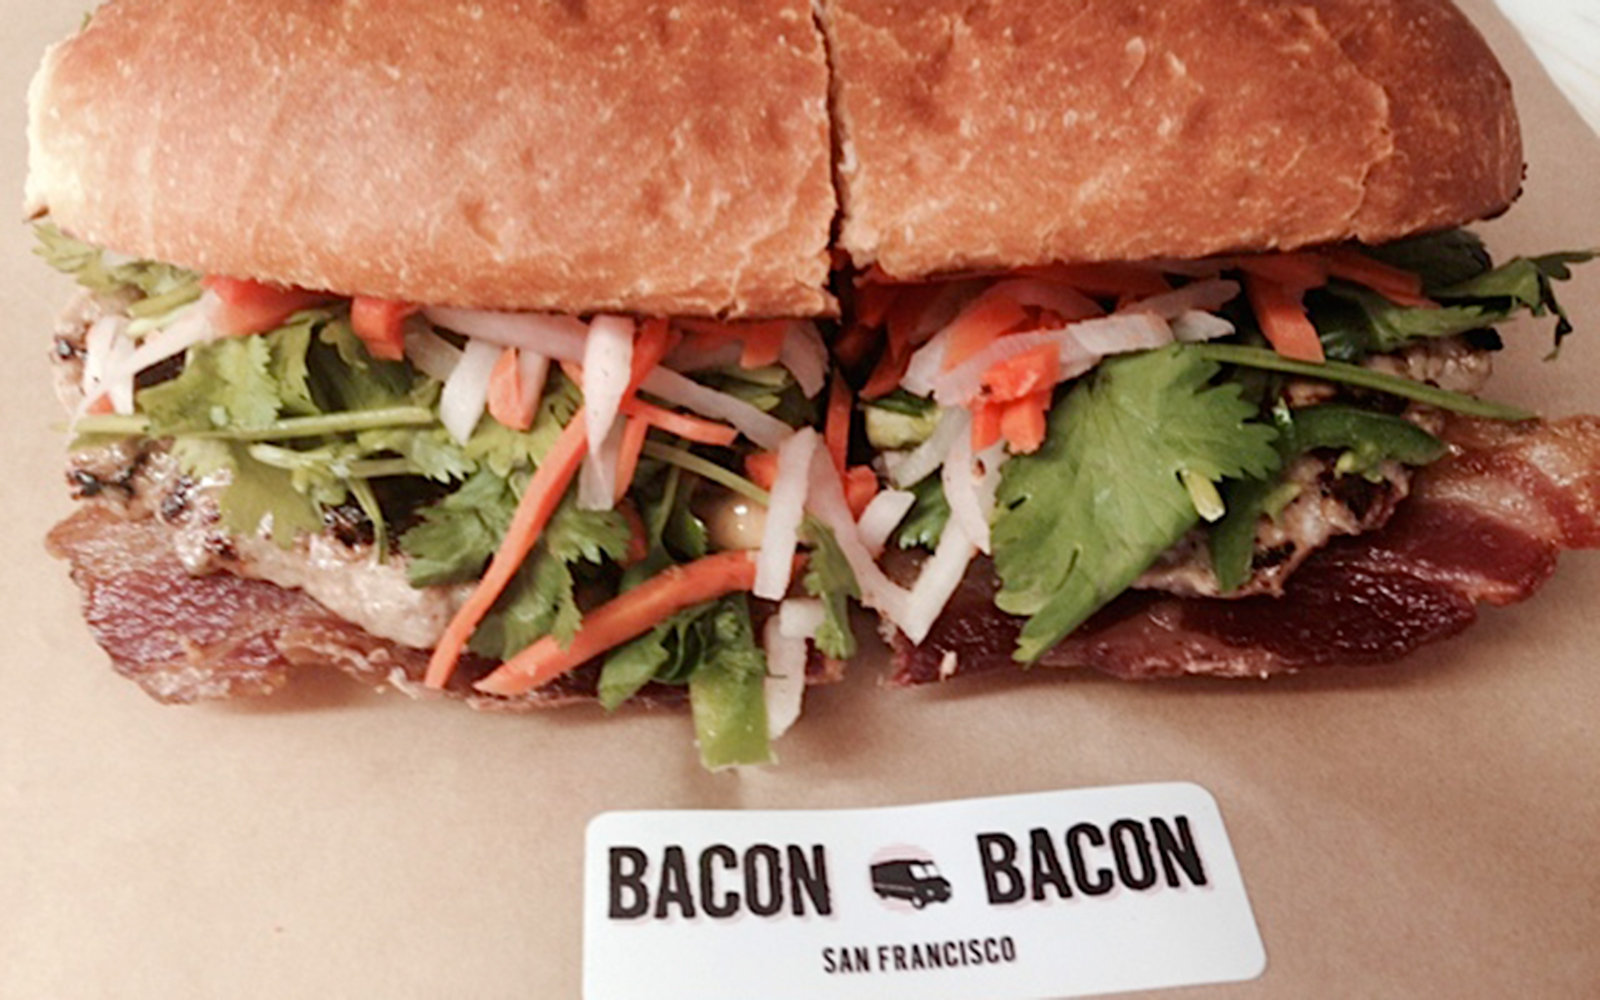 Bacon on Wheels: Bacon Bacon, San Francisco